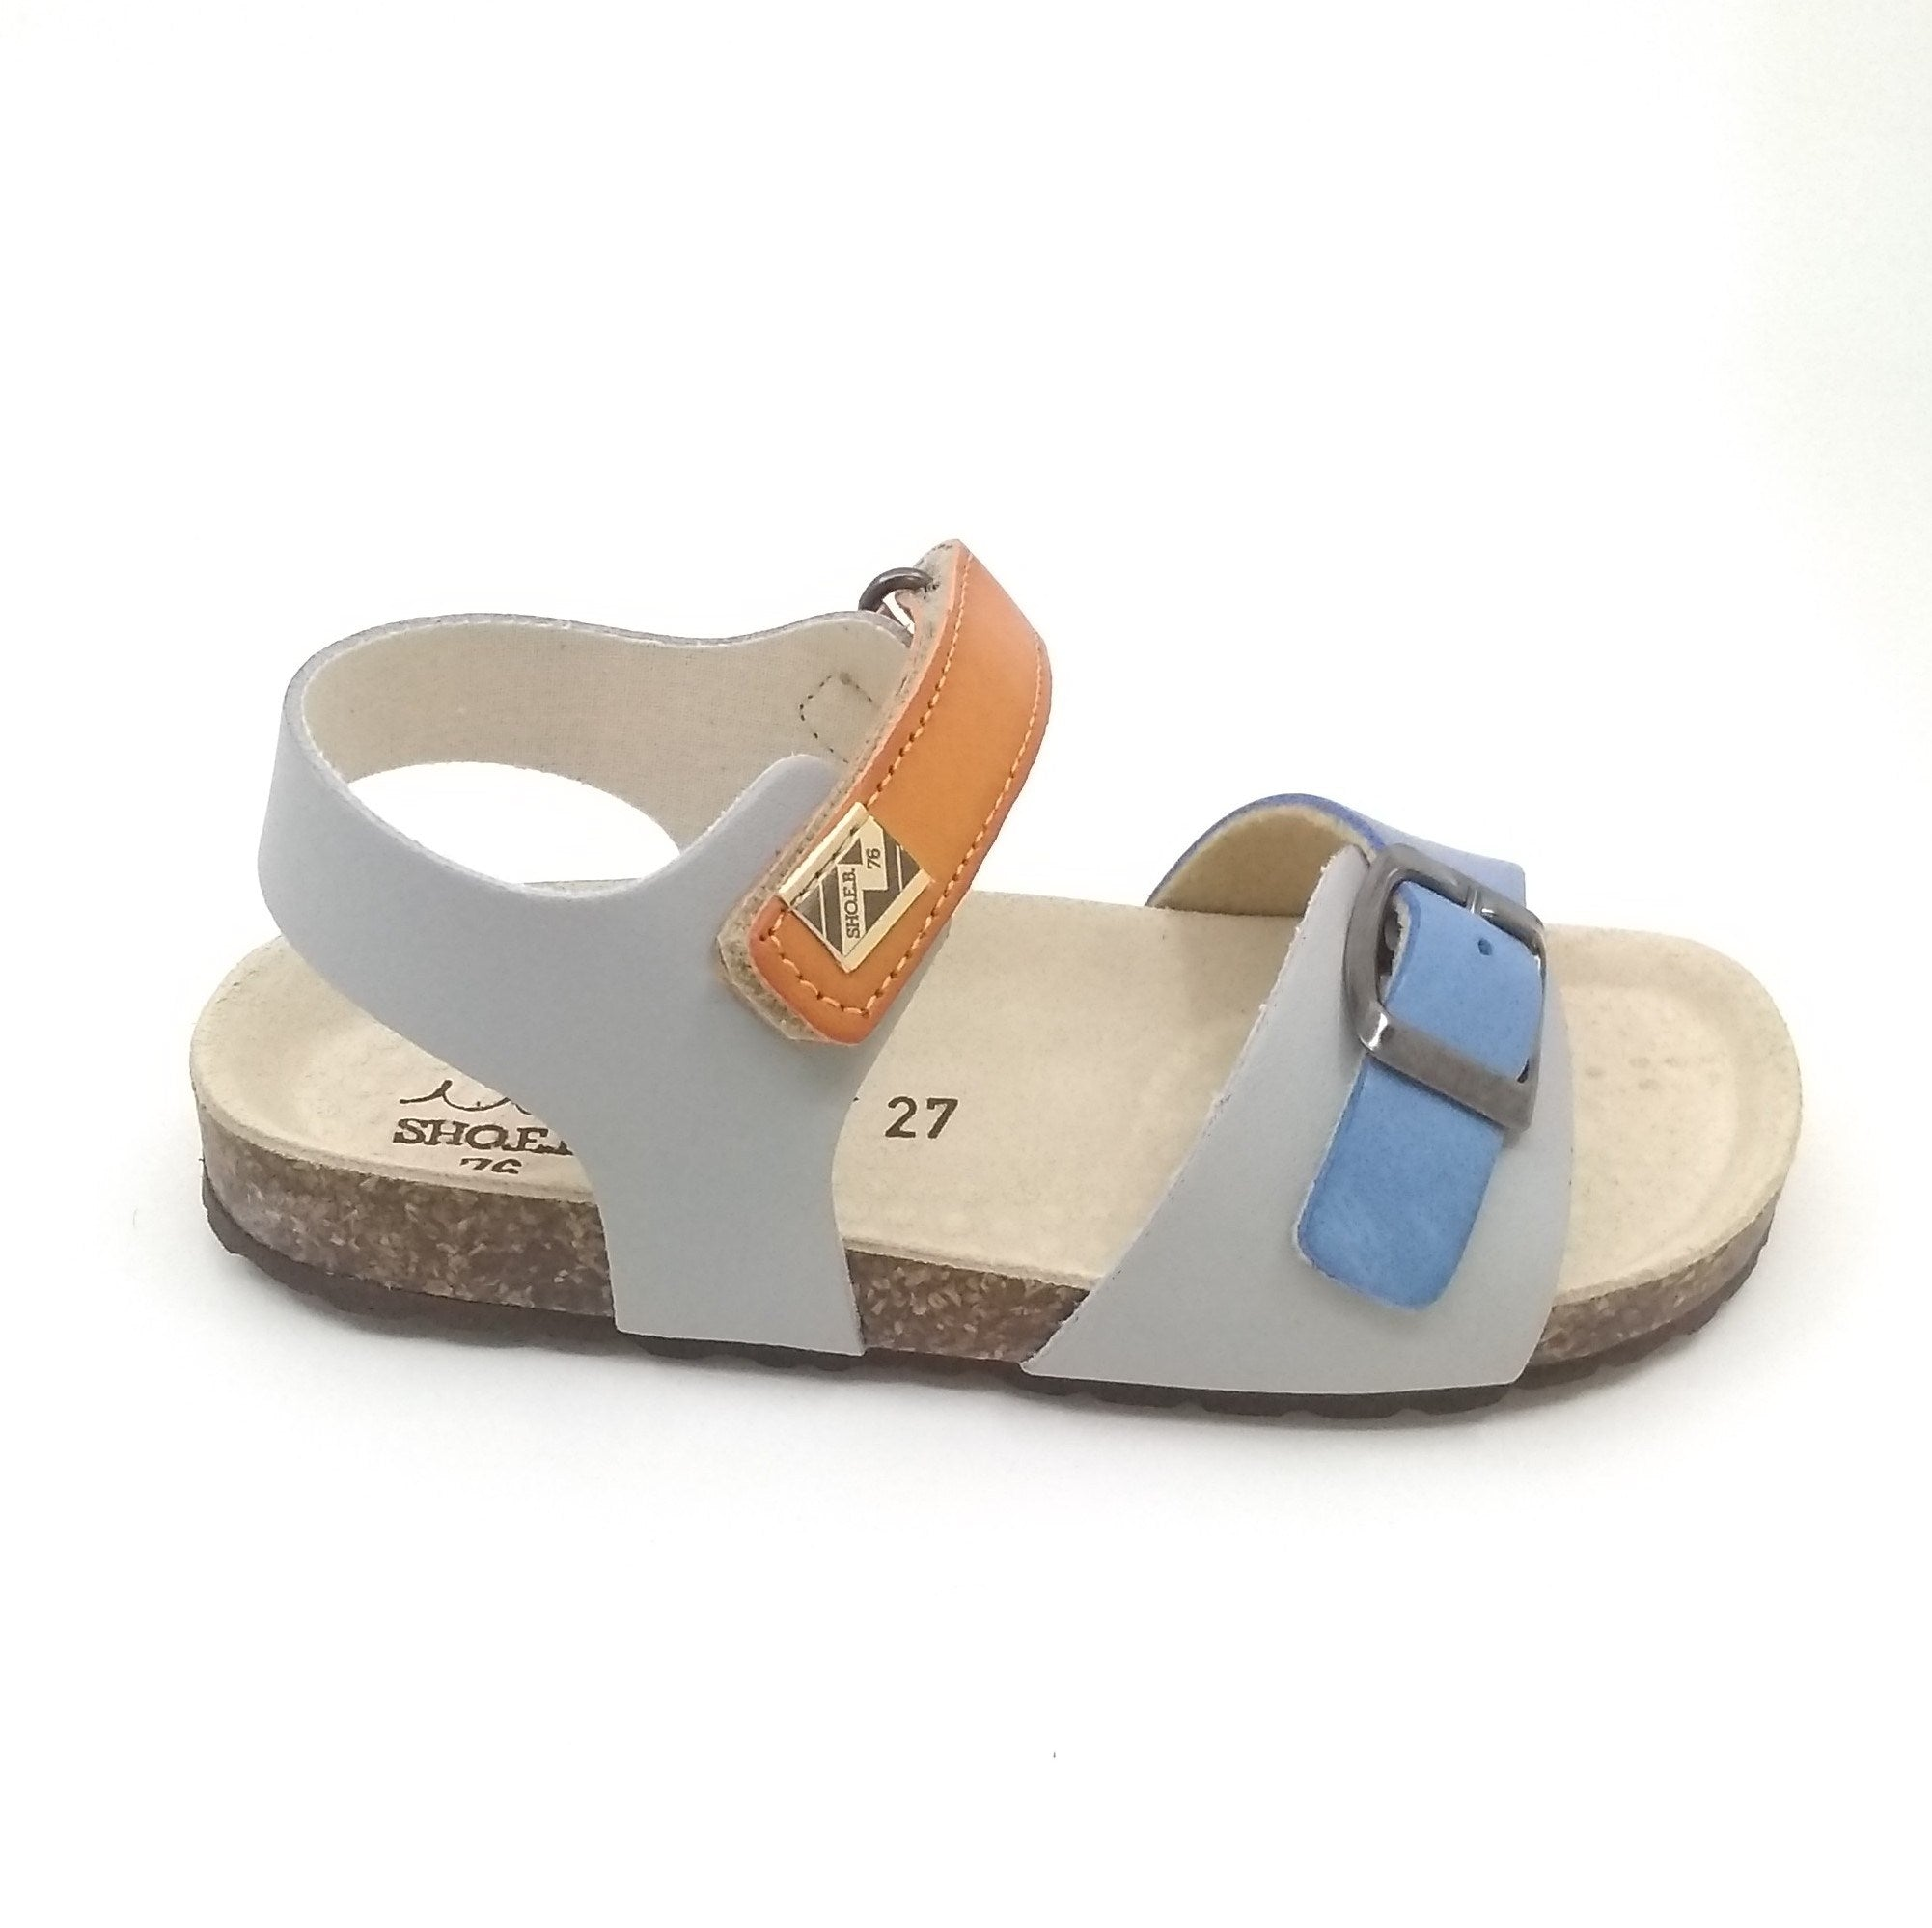 ShoeB76 Gray Sandal with Orange and Blue Straps